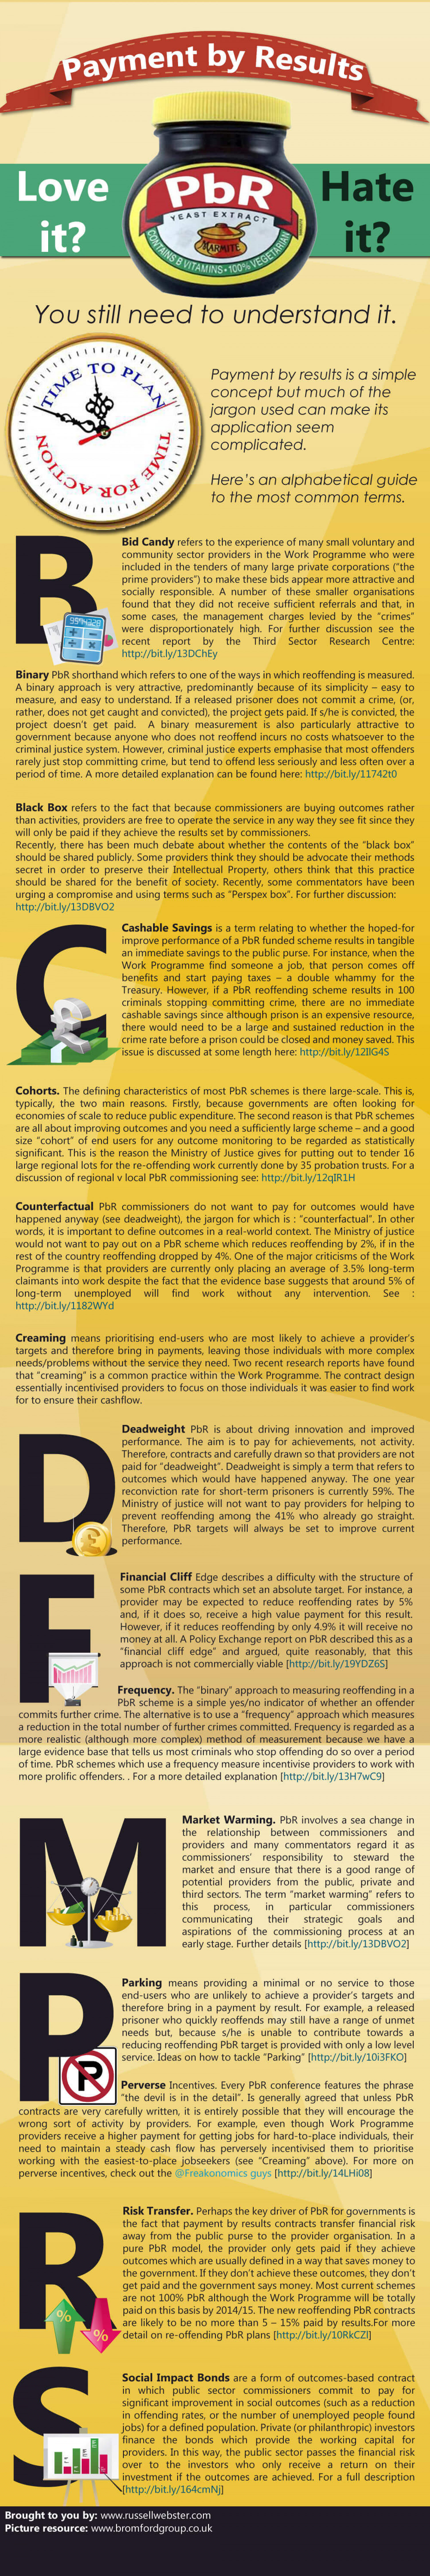 Payment by Results Jargon demystified Infographic